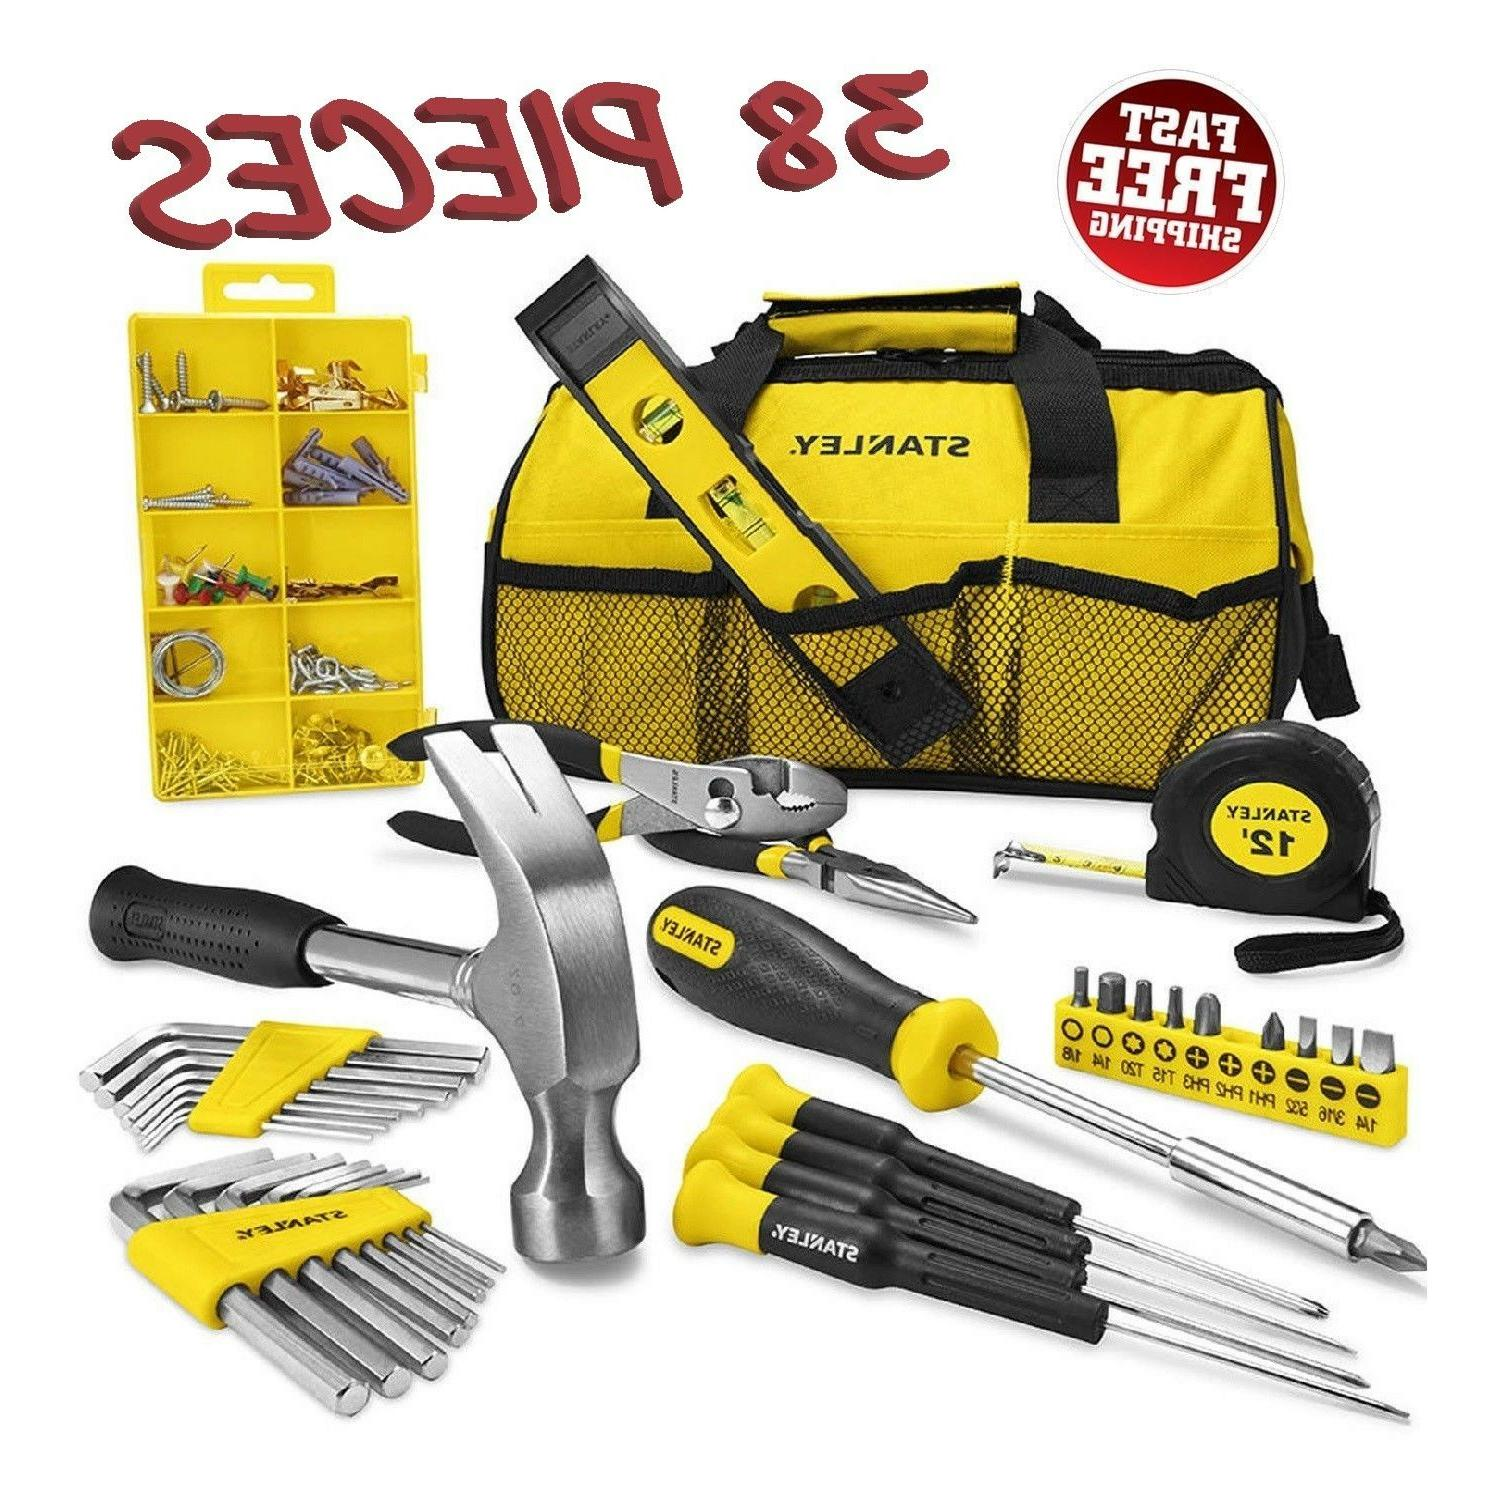 Stanley Household 38pc Tool Set with Soft Case Gift Home Rep